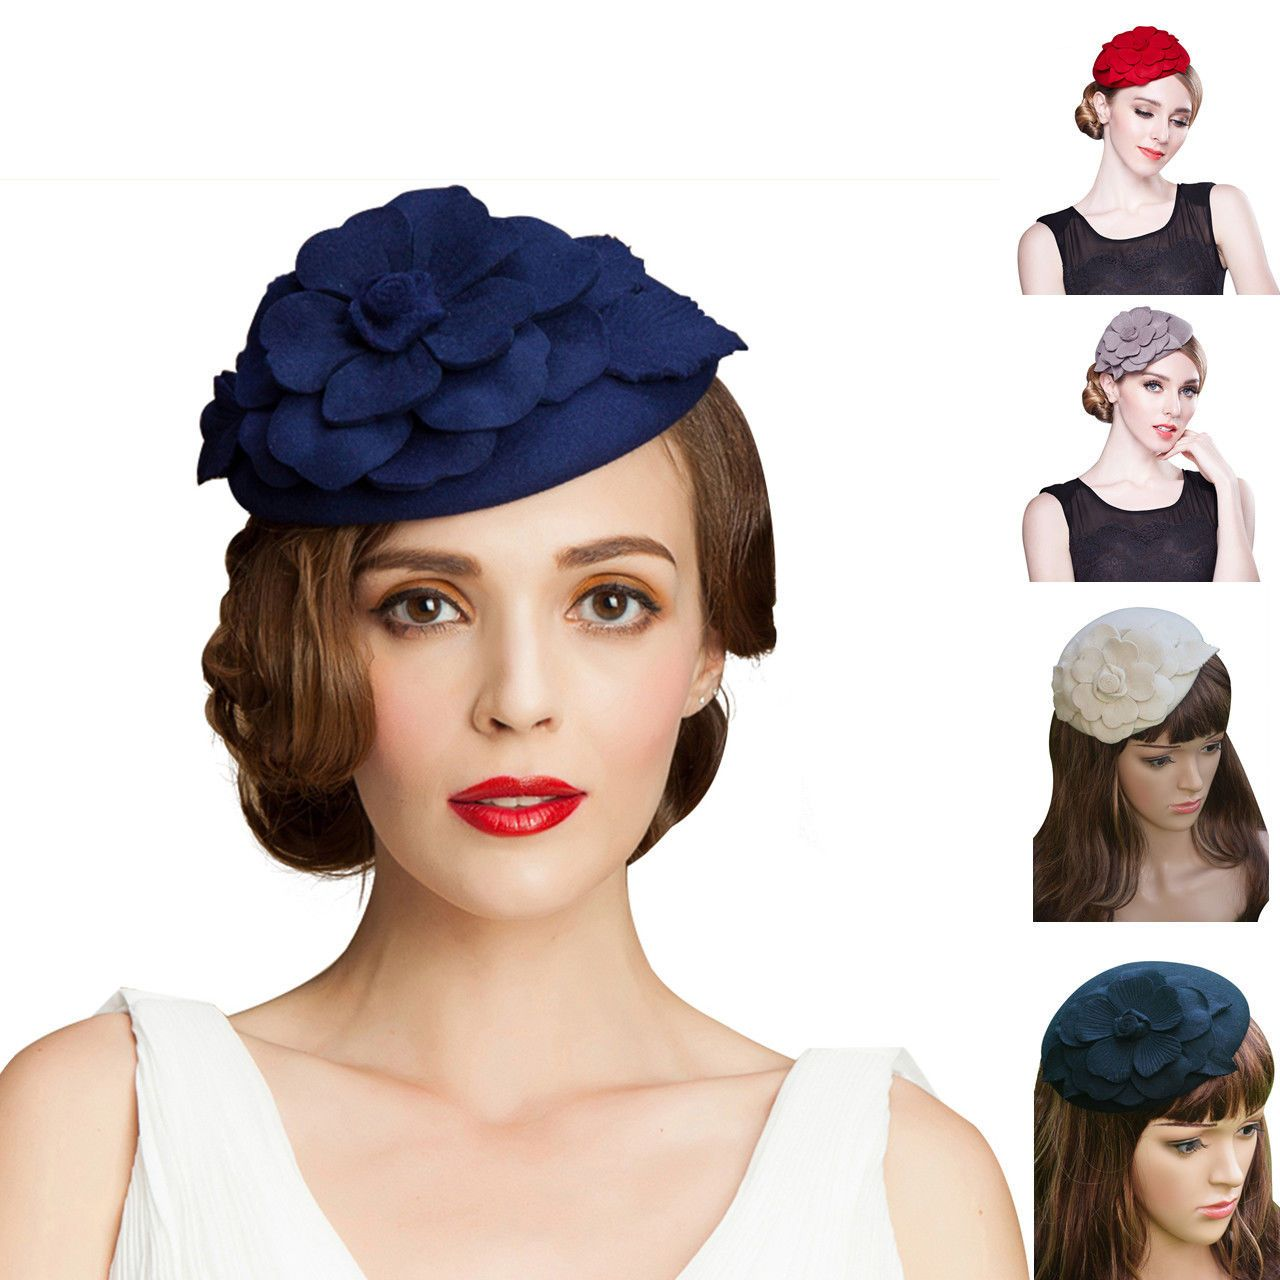 ca8140ee45ad6 Floral Womens Dress Fascinator Wool Felt Pillbox Hat Cocktail Party Wedding  A083